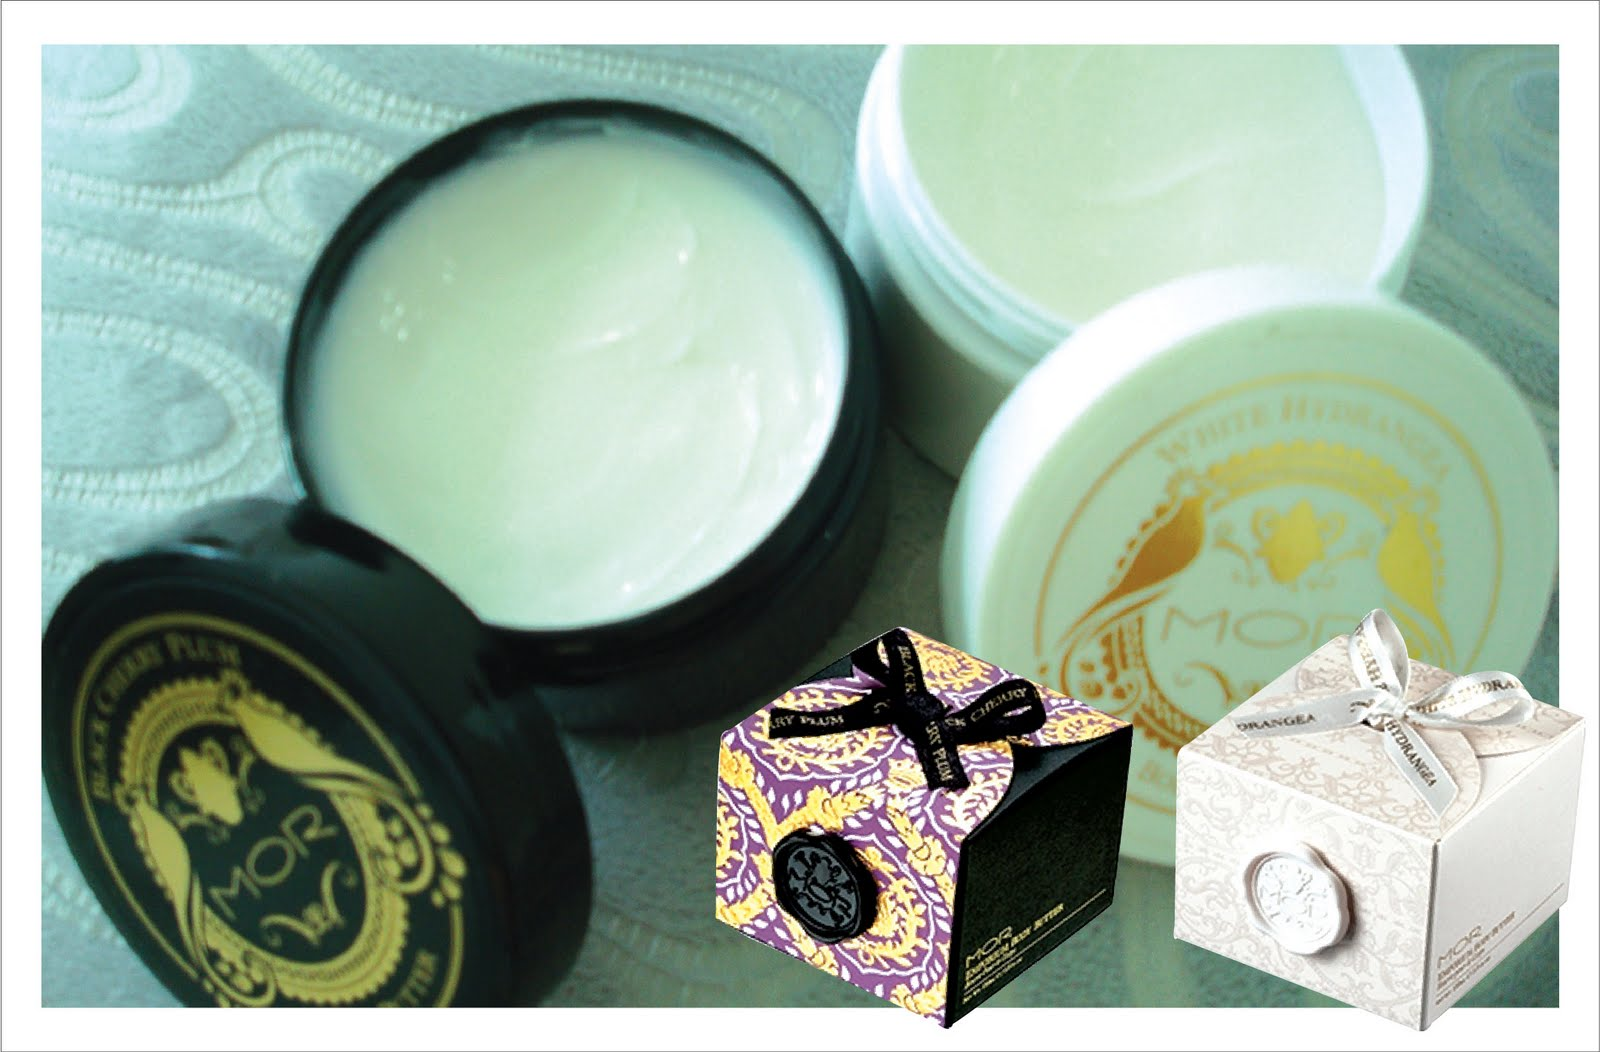 MOR body butters, lip delight, soapettes, lip nectar